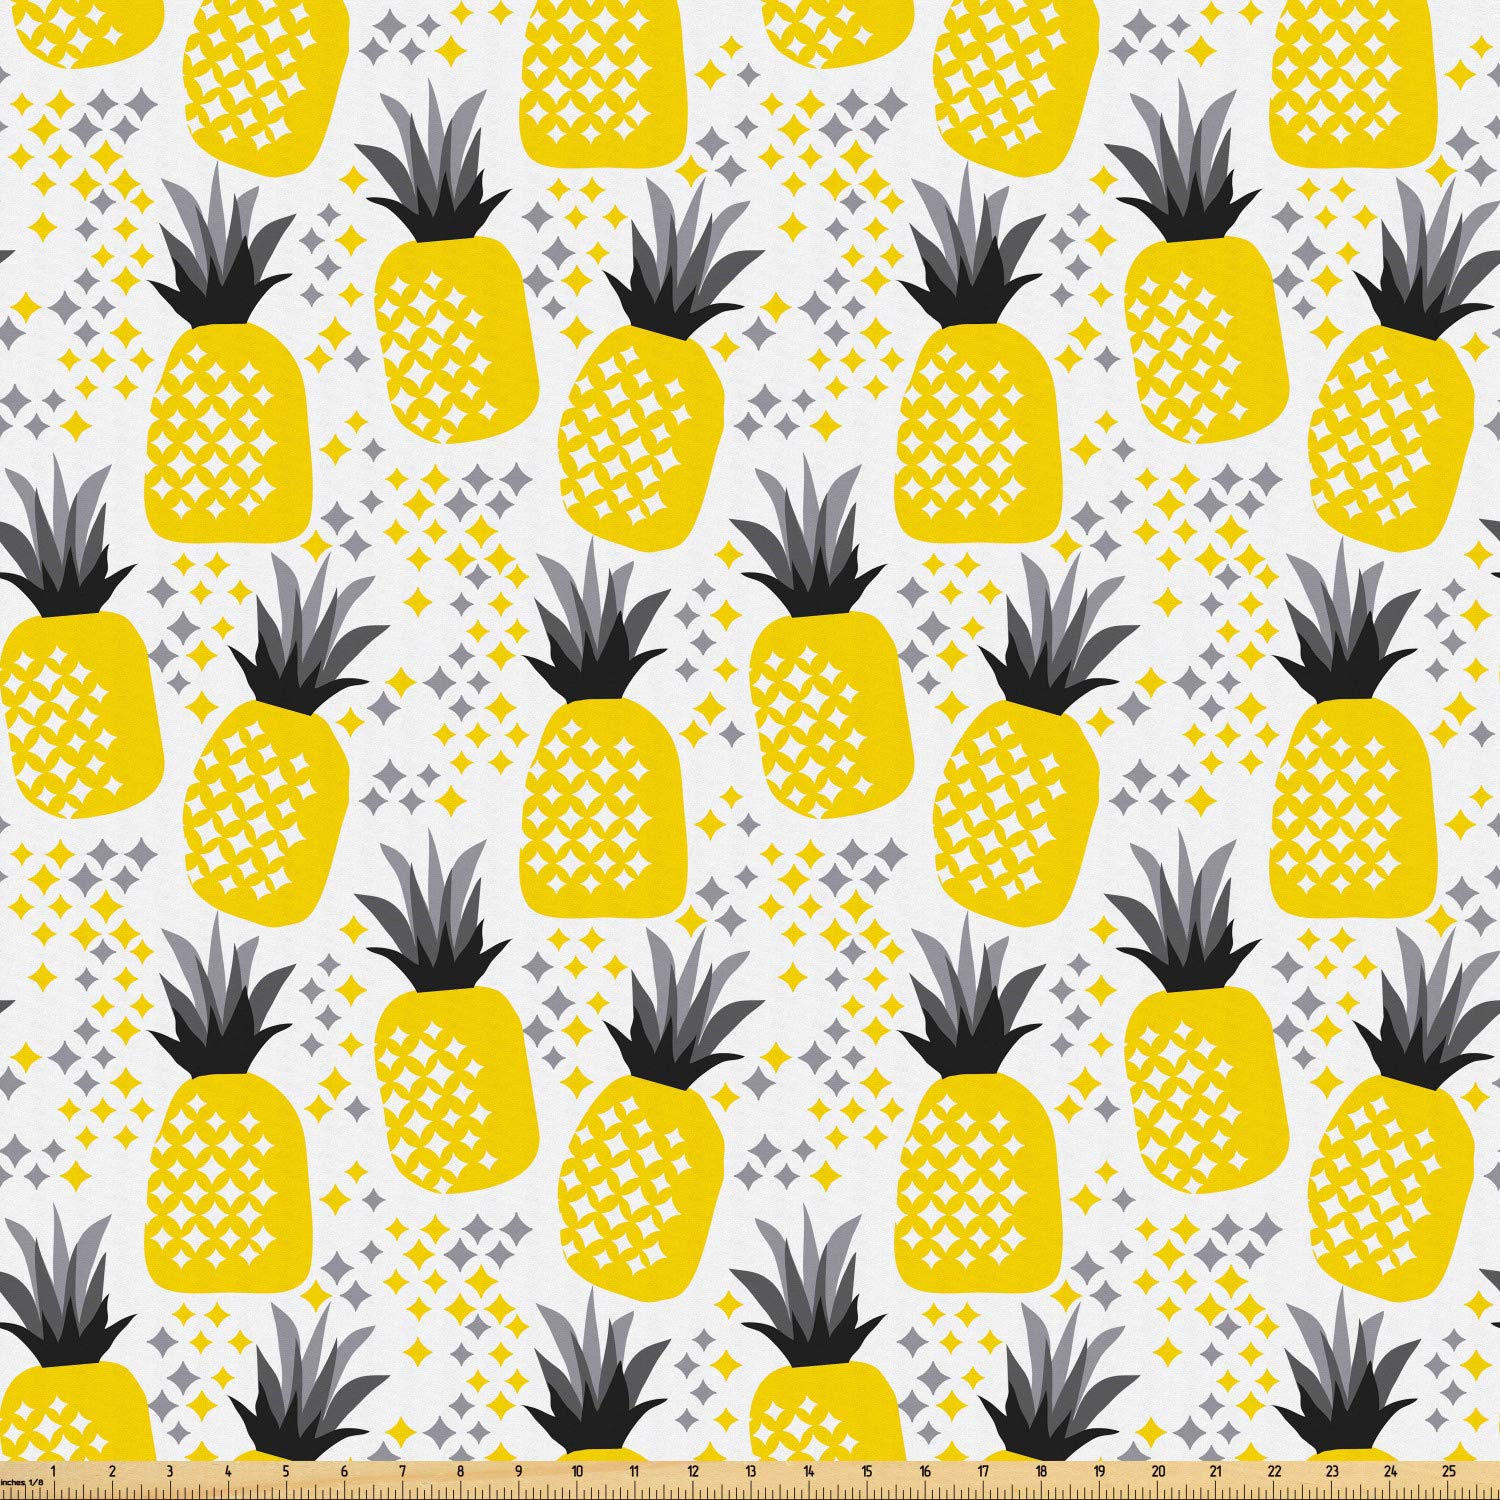 Amazon.com: Ambesonne Exotic Fabric by The Yard, Pineapples.